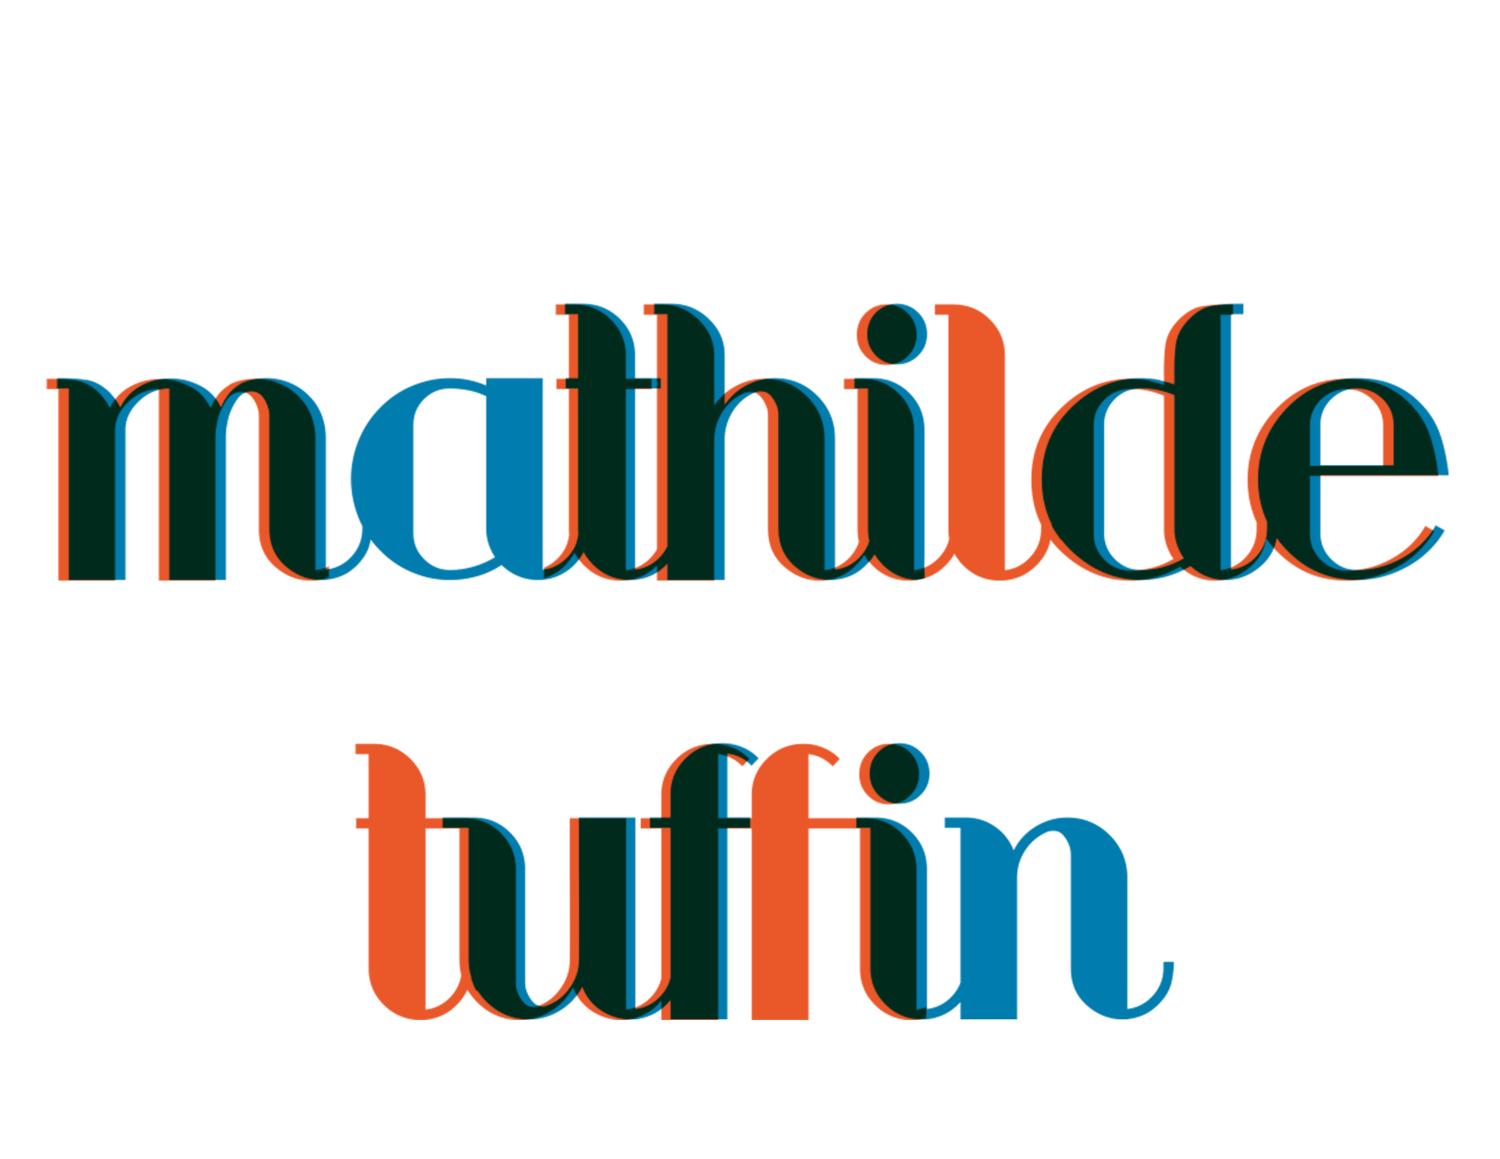 Mathilde Tuffin